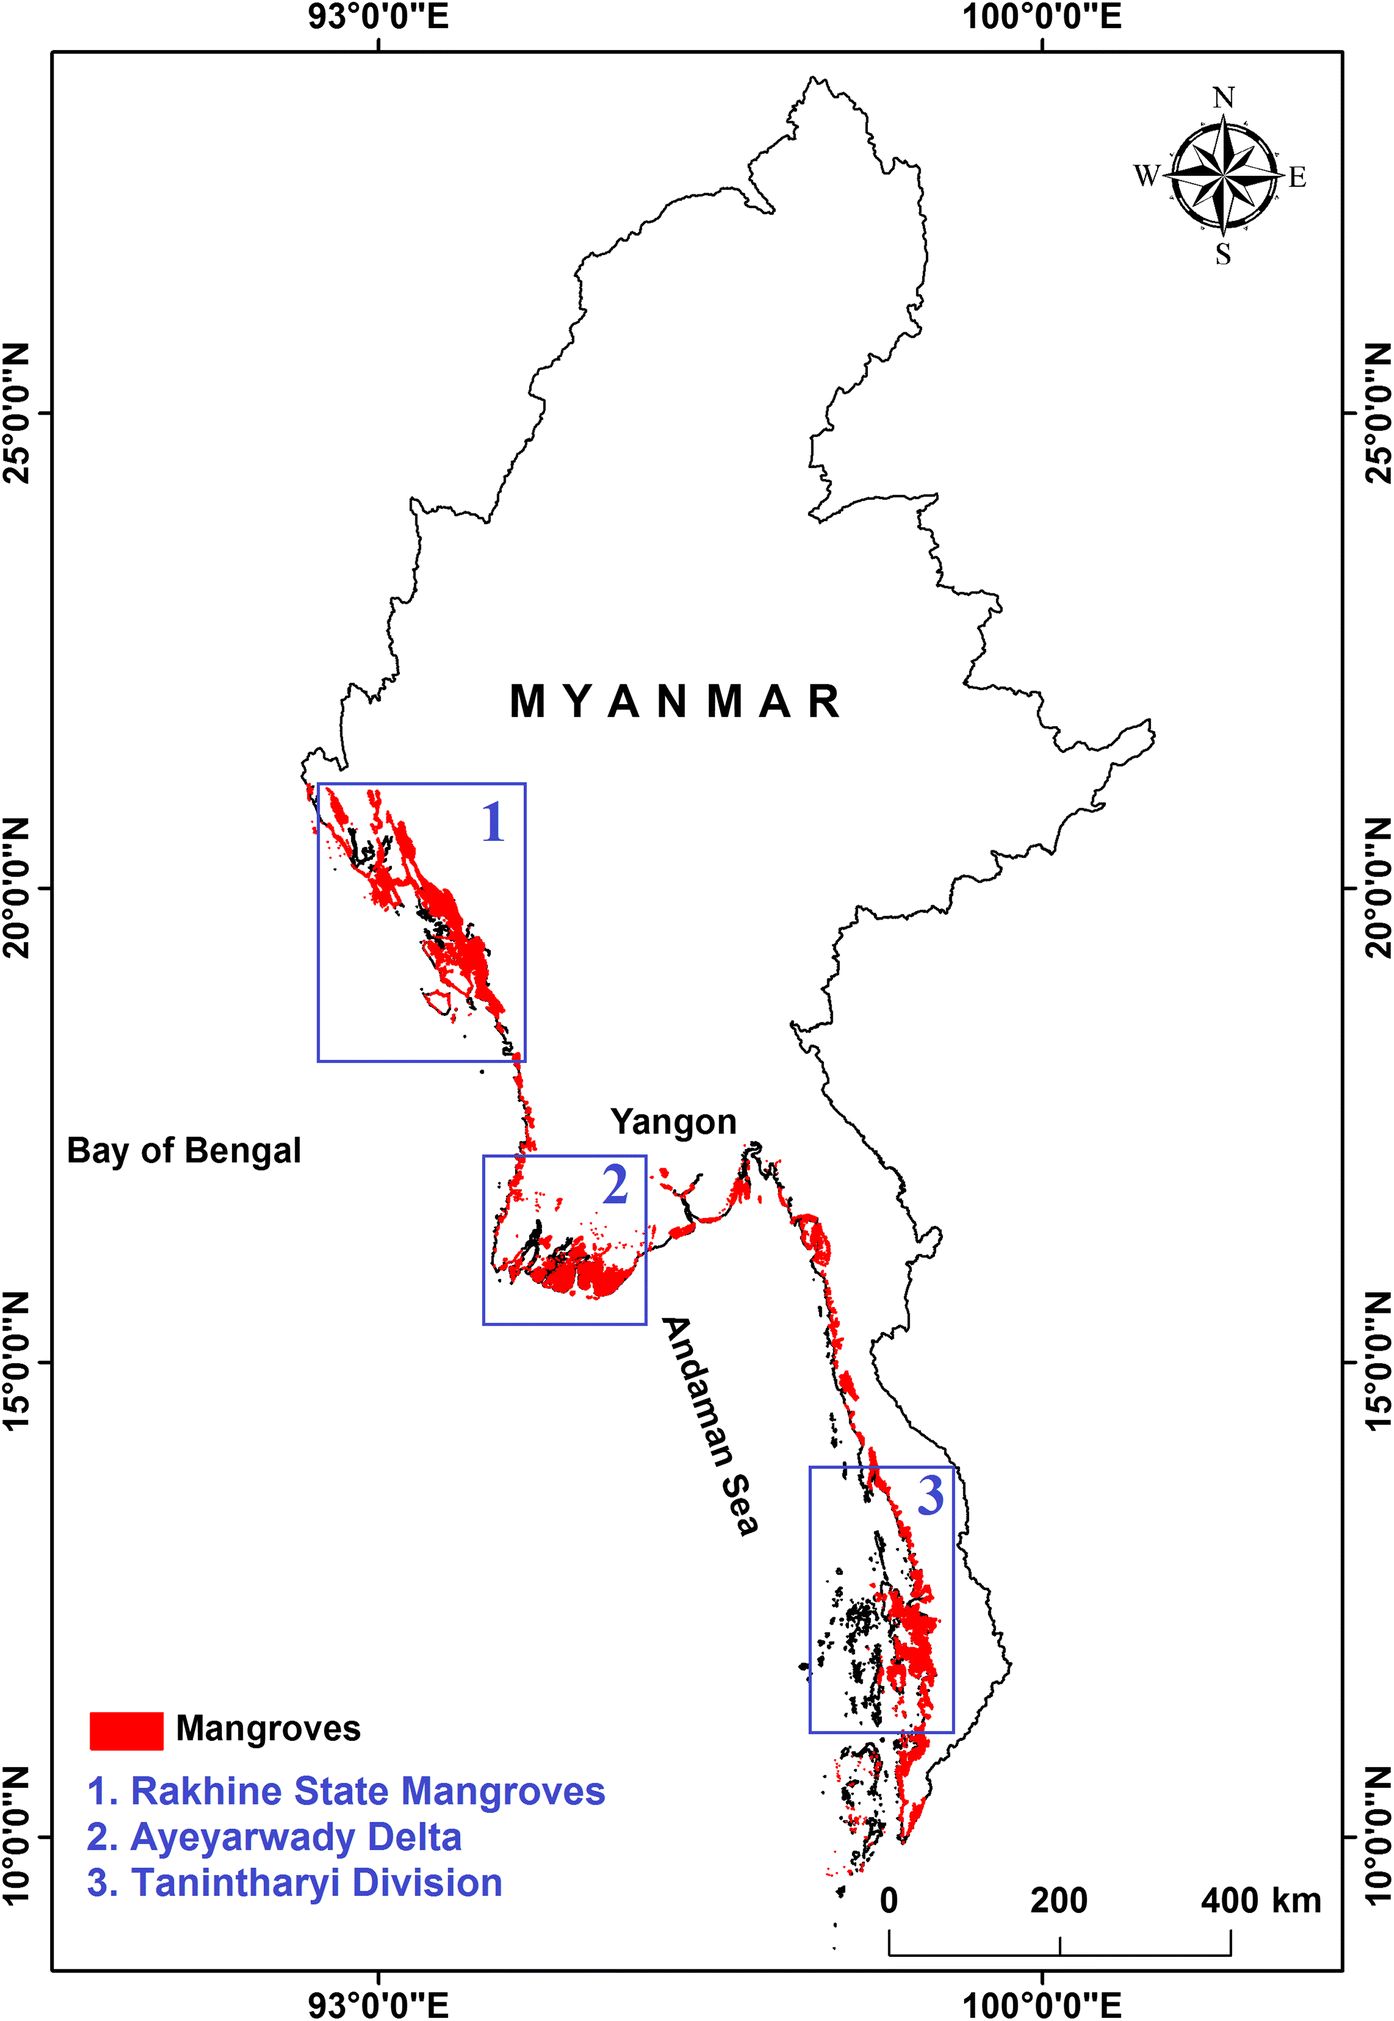 Rapidly diminishing mangrove forests in Myanmar (Burma): a